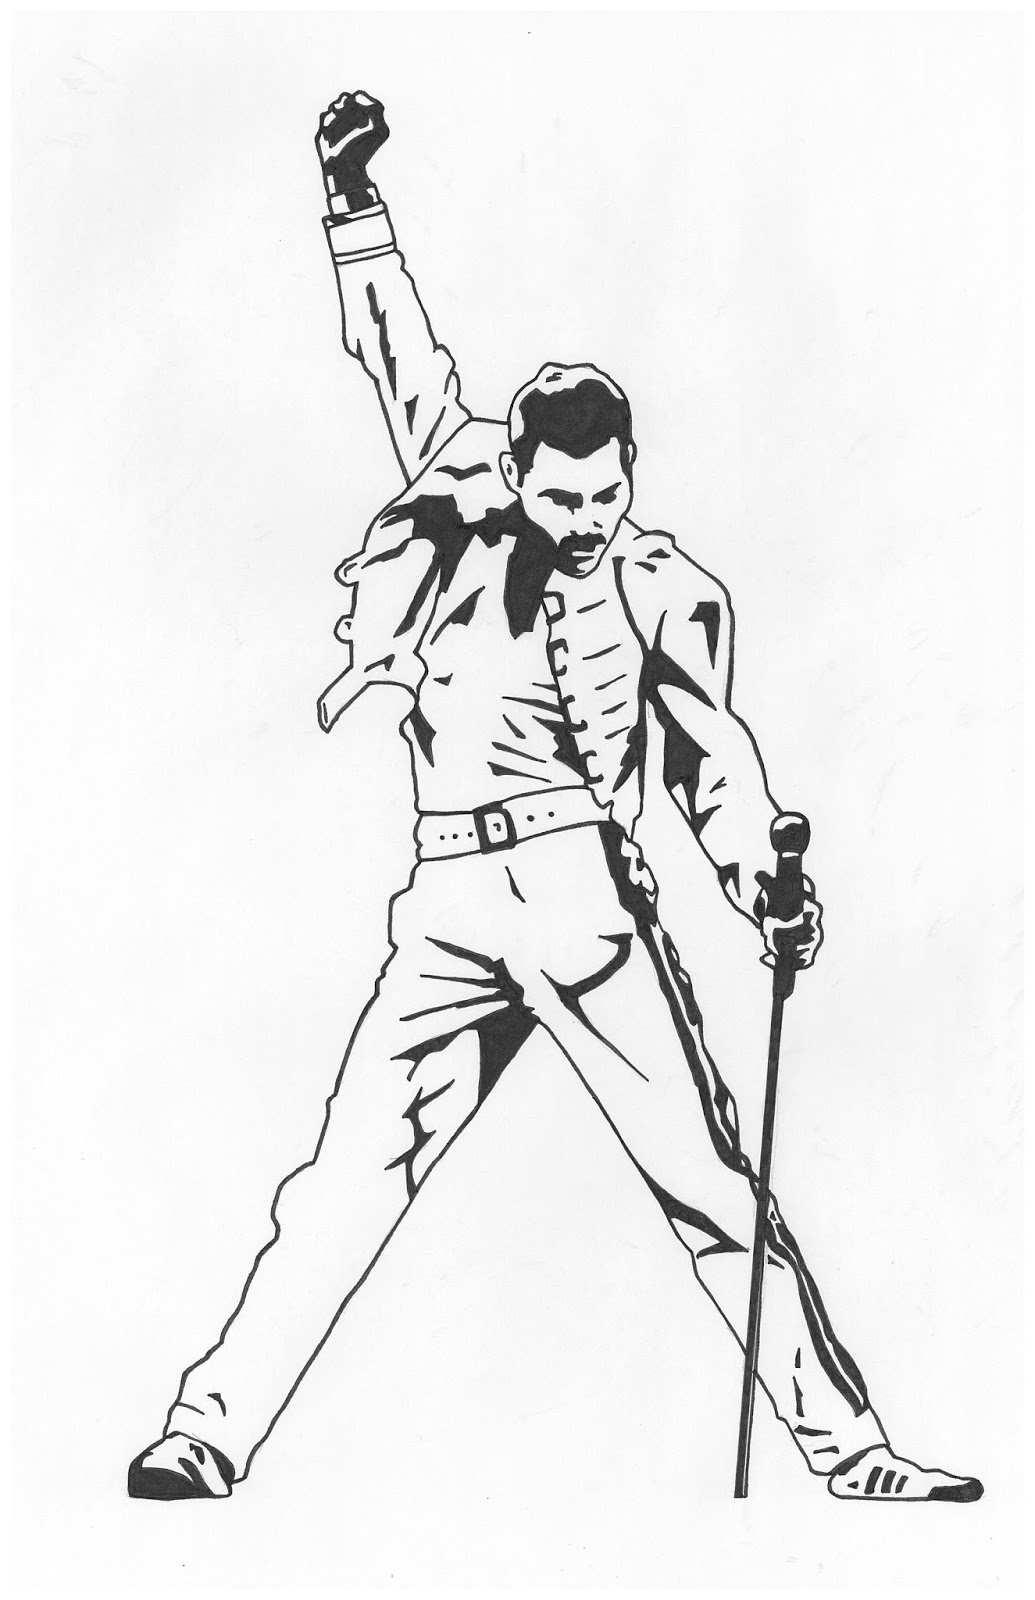 freddie mercury the yard sale artist tractor clip art for shirts tractor clip art free